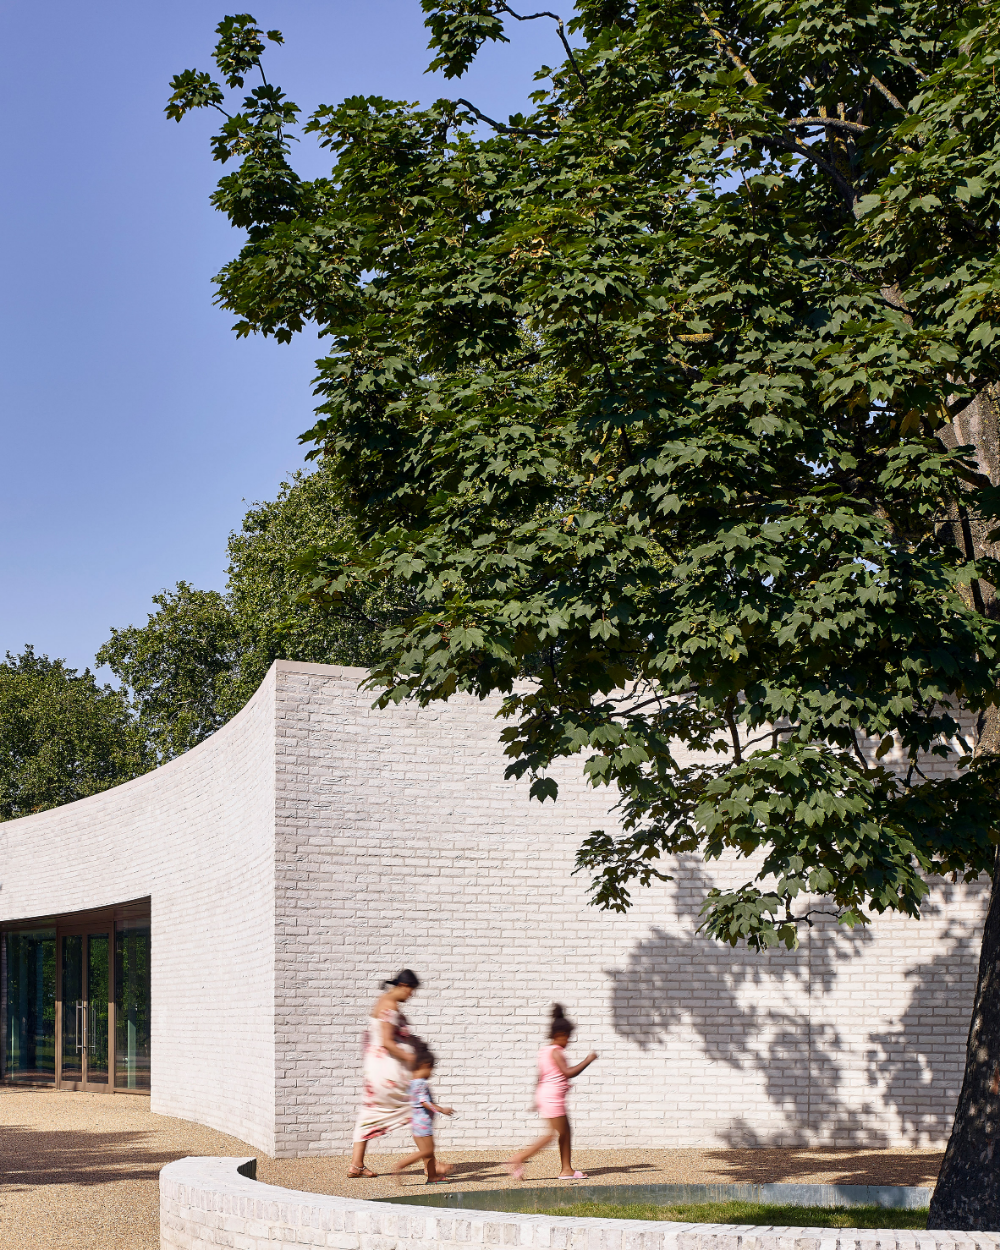 White Brick Baldwin Park S Design: Southwark Park Pavilion Features Curving Walls Of White